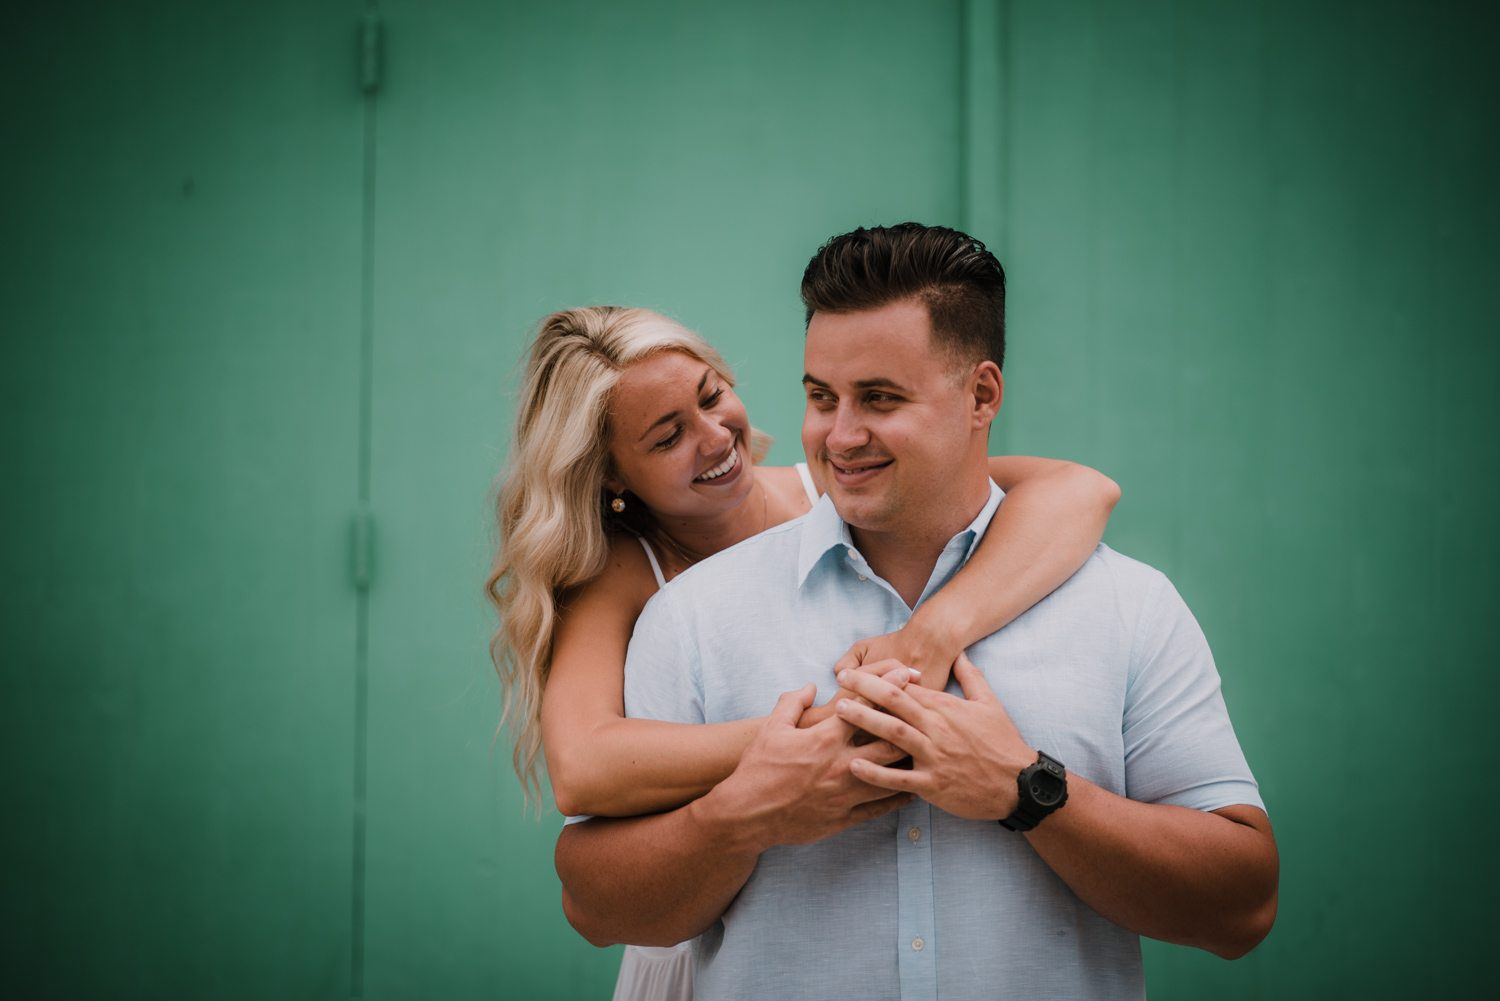 fort zachary taylor snipes key west engagement 7 - Key West Engagement Session - Cecilia & Dominick